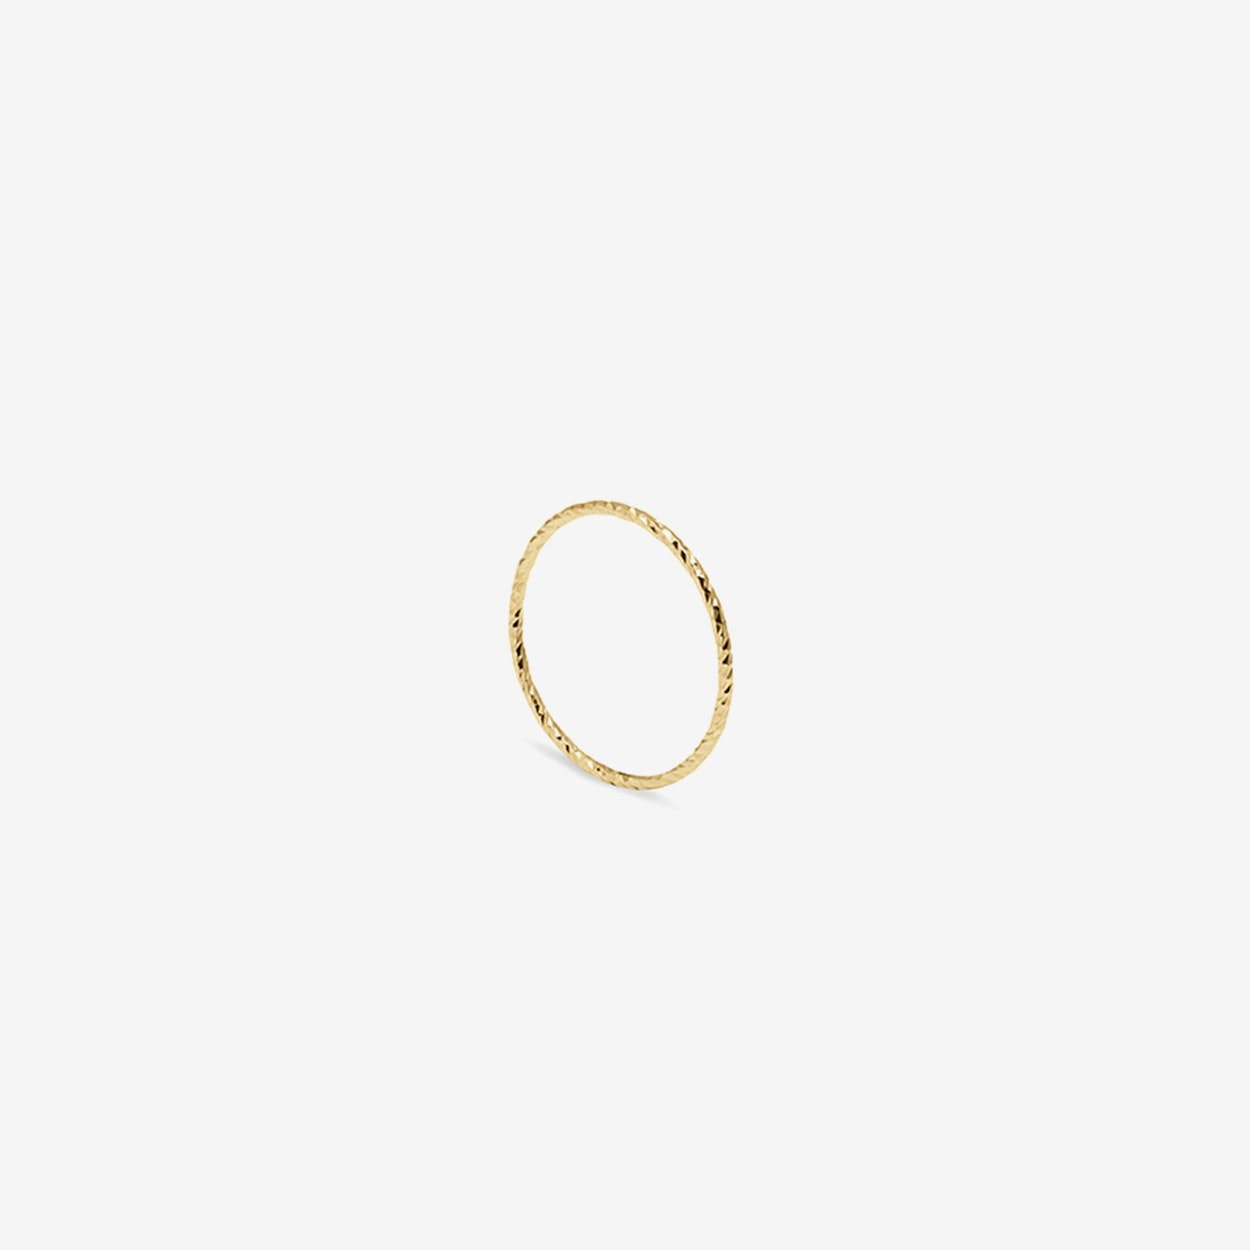 Ultra Skinny Diamond Stacking Ring in Gold - MYIA BONNER